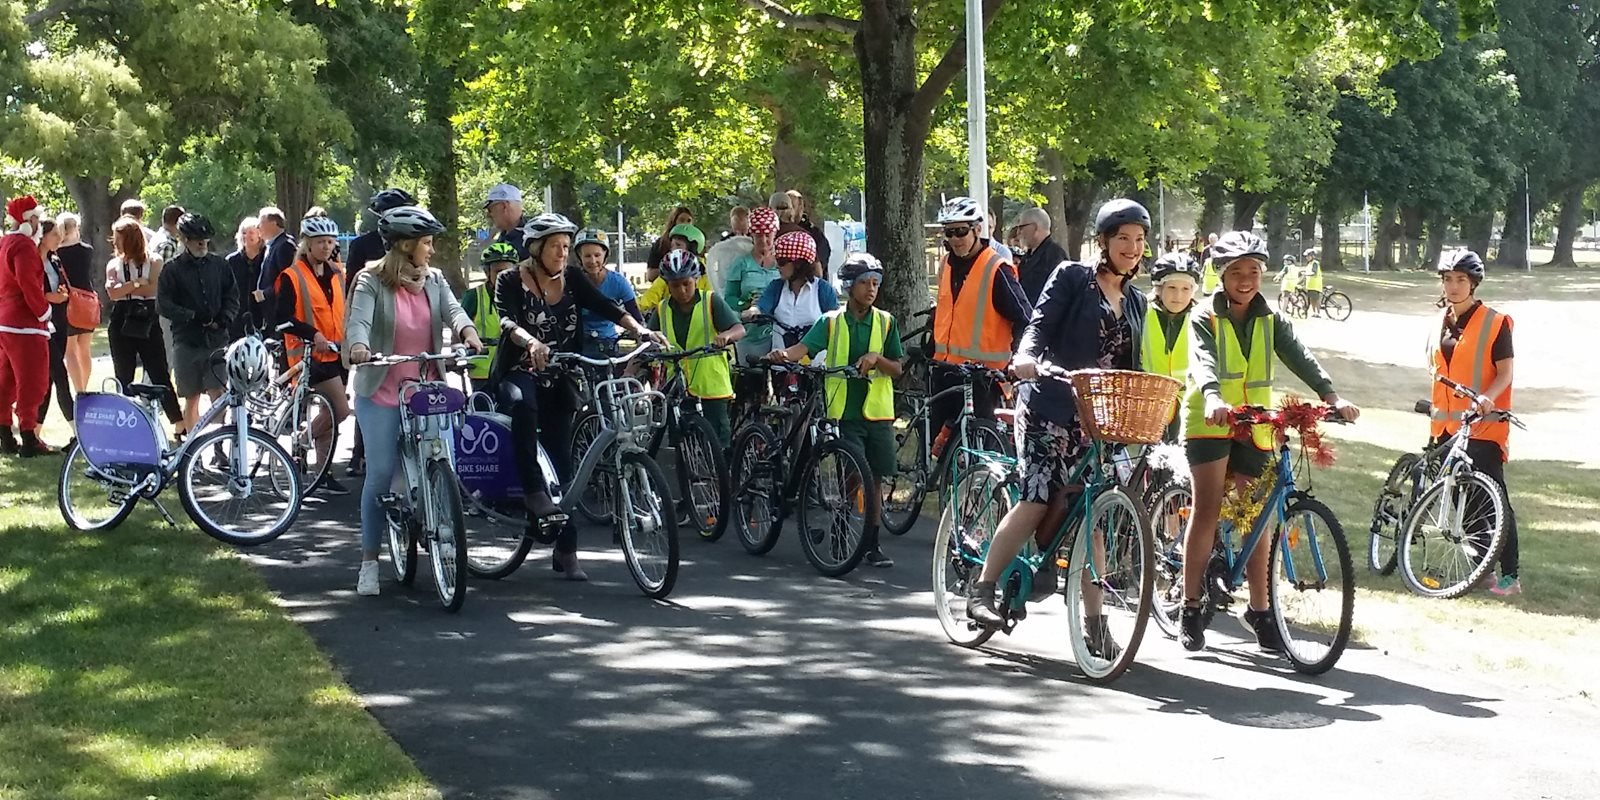 8cffe2aca Assoc. Transport Minister Julie-Anne Genter and Linwood Ave School pupils  open the Rapanui Cycleway